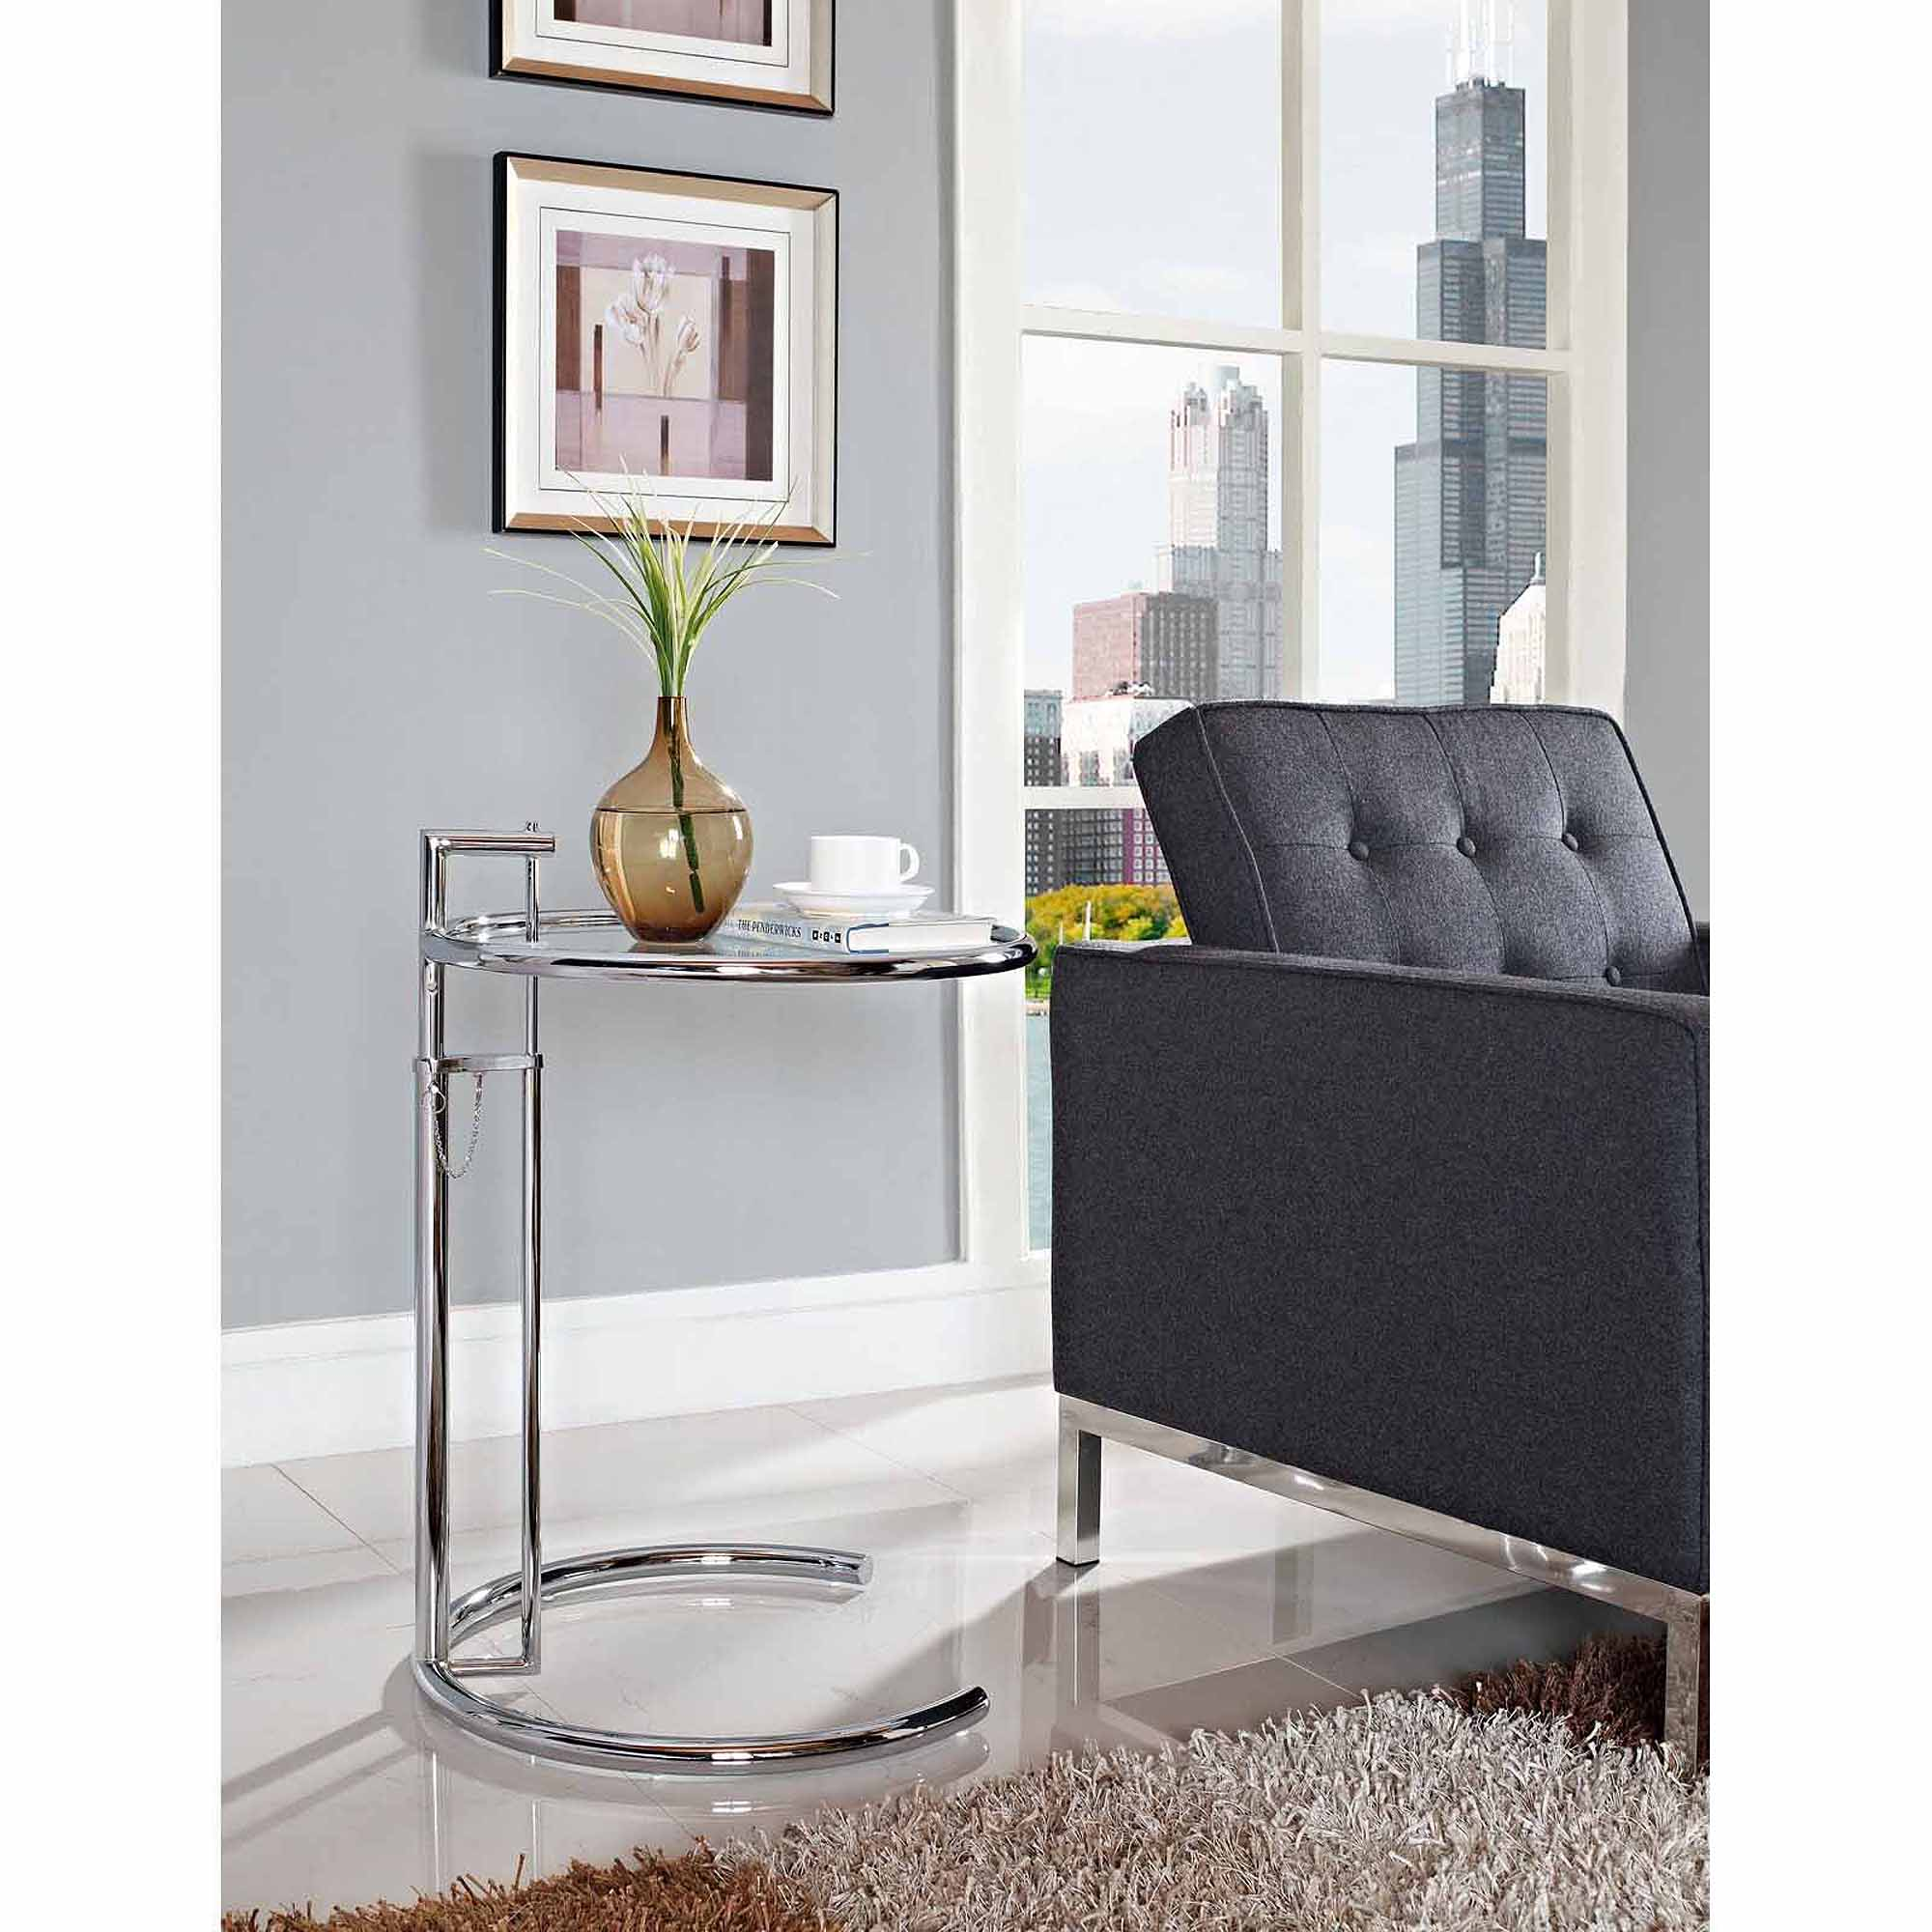 Eileen Gray Table Details About Modway Eileen Gray Adjustable Height Side Table In Silver